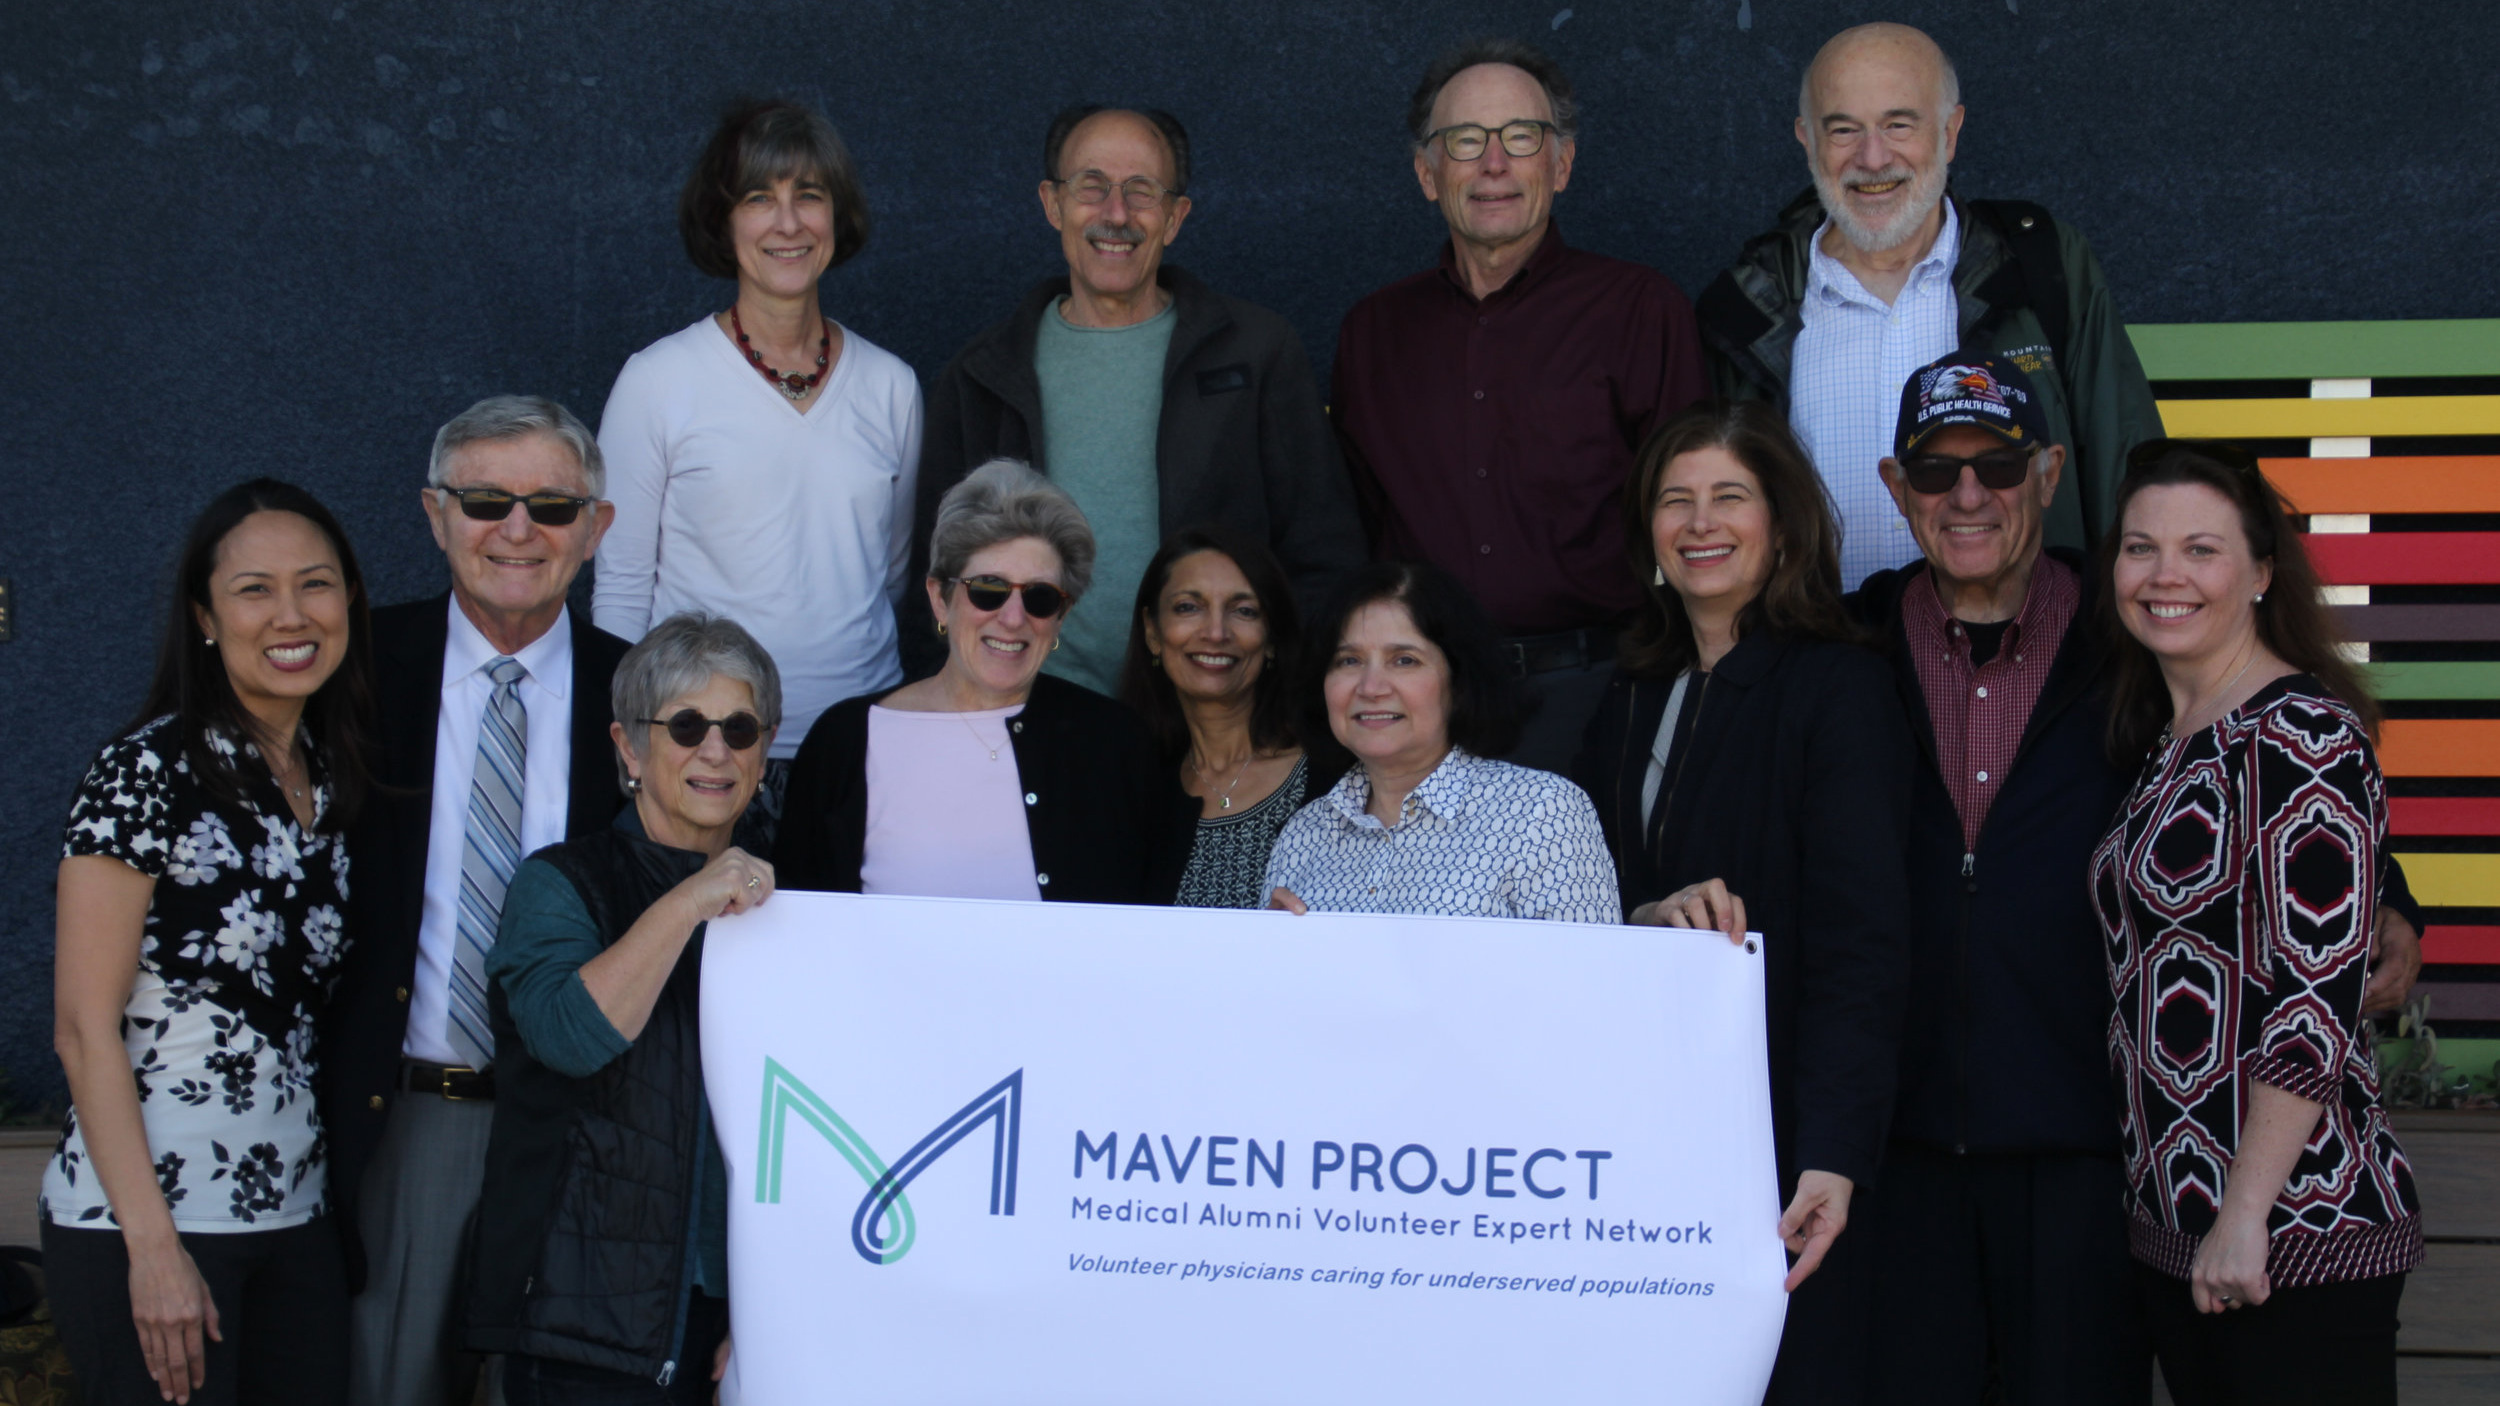 The MAVEN Project Visits Mission Neighborhood Health Clinic